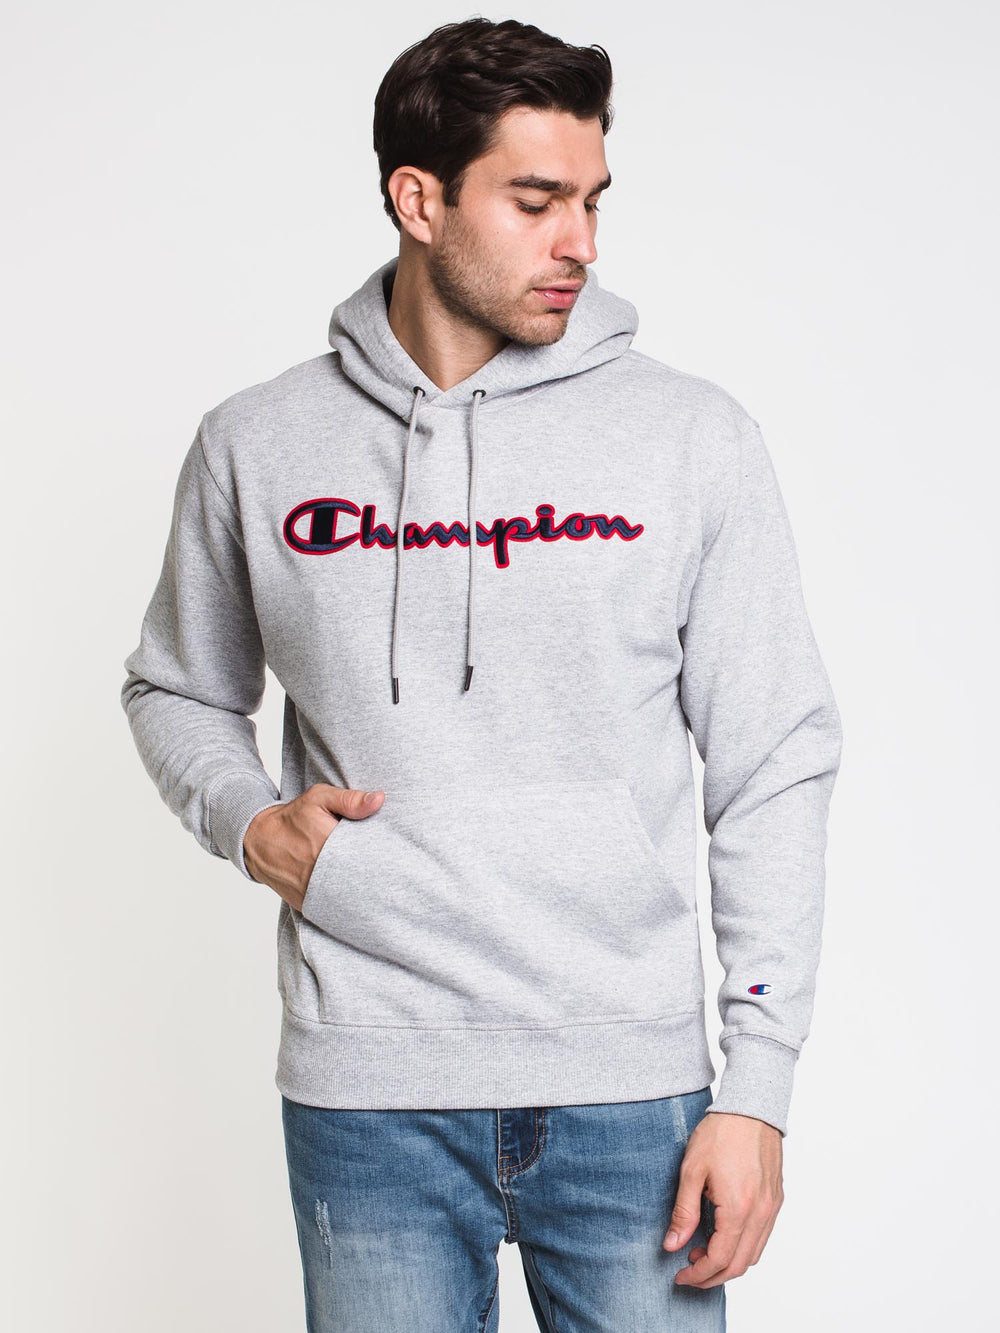 MENS PB APPLQ PULL OVER HOODIE - OX GREY